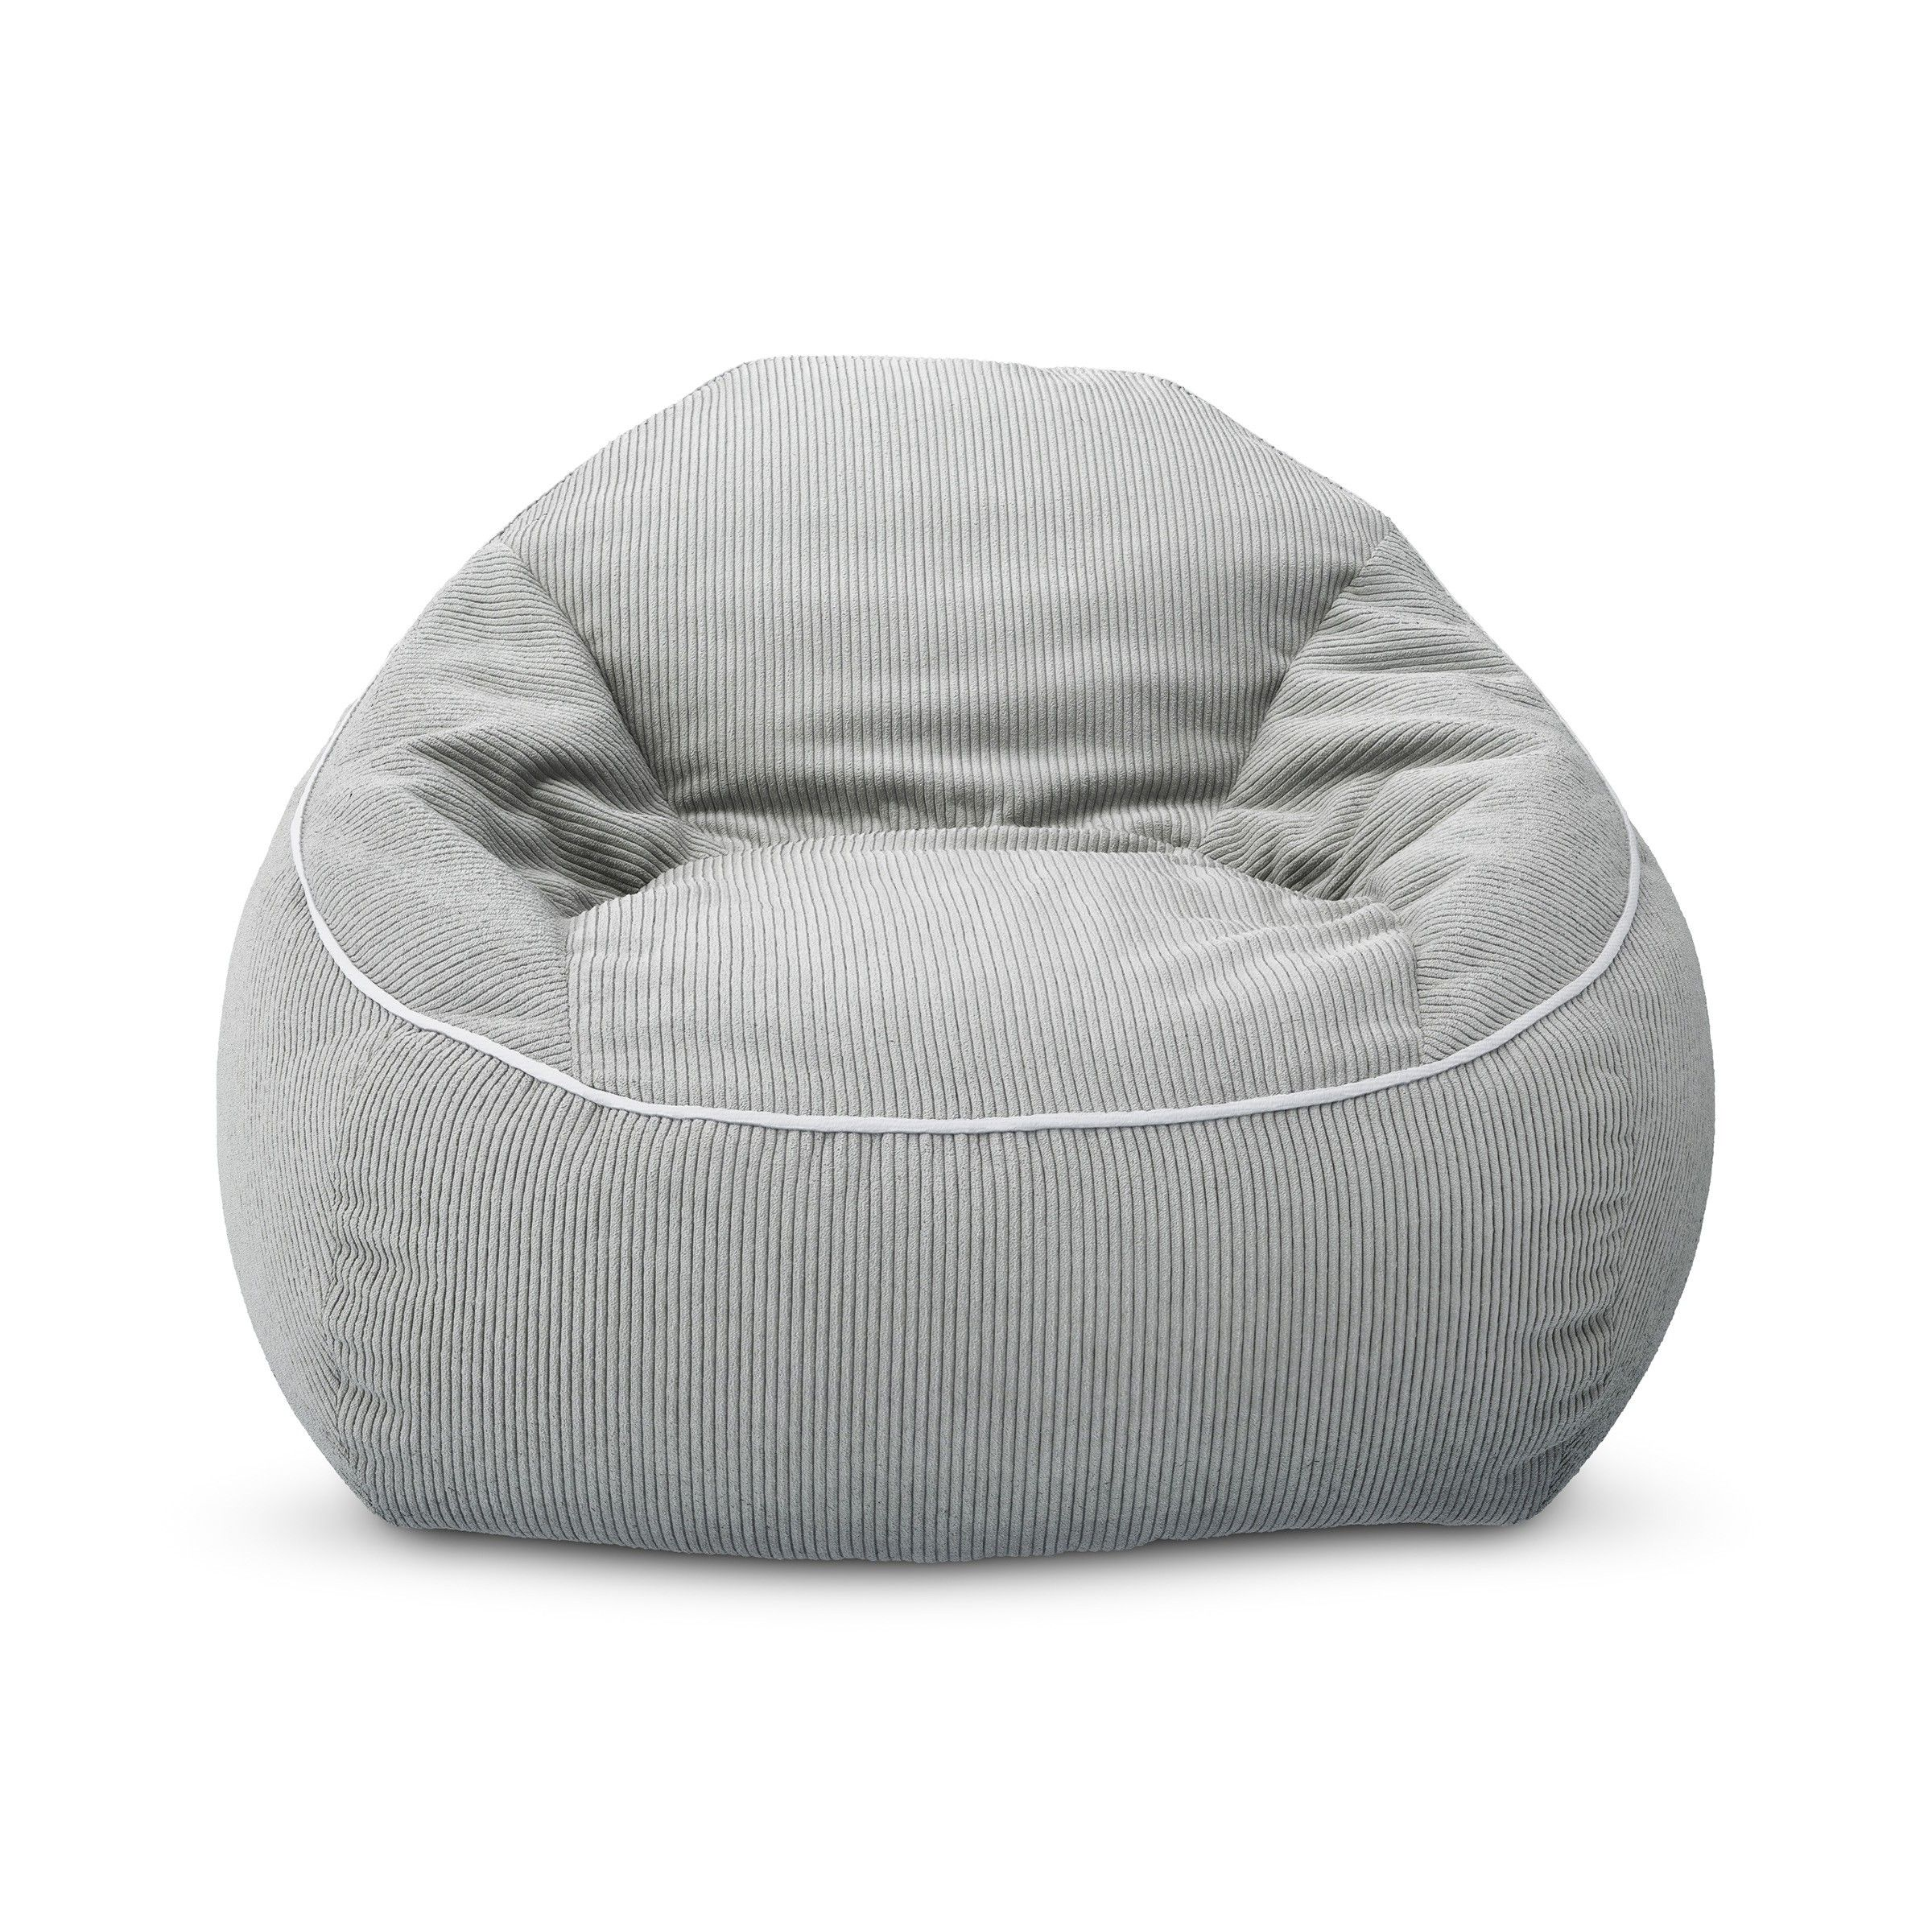 Corduroy Bean Bag Chair Xl Corduroy Bean Bag Chair Pillowfort Beanbag Chair